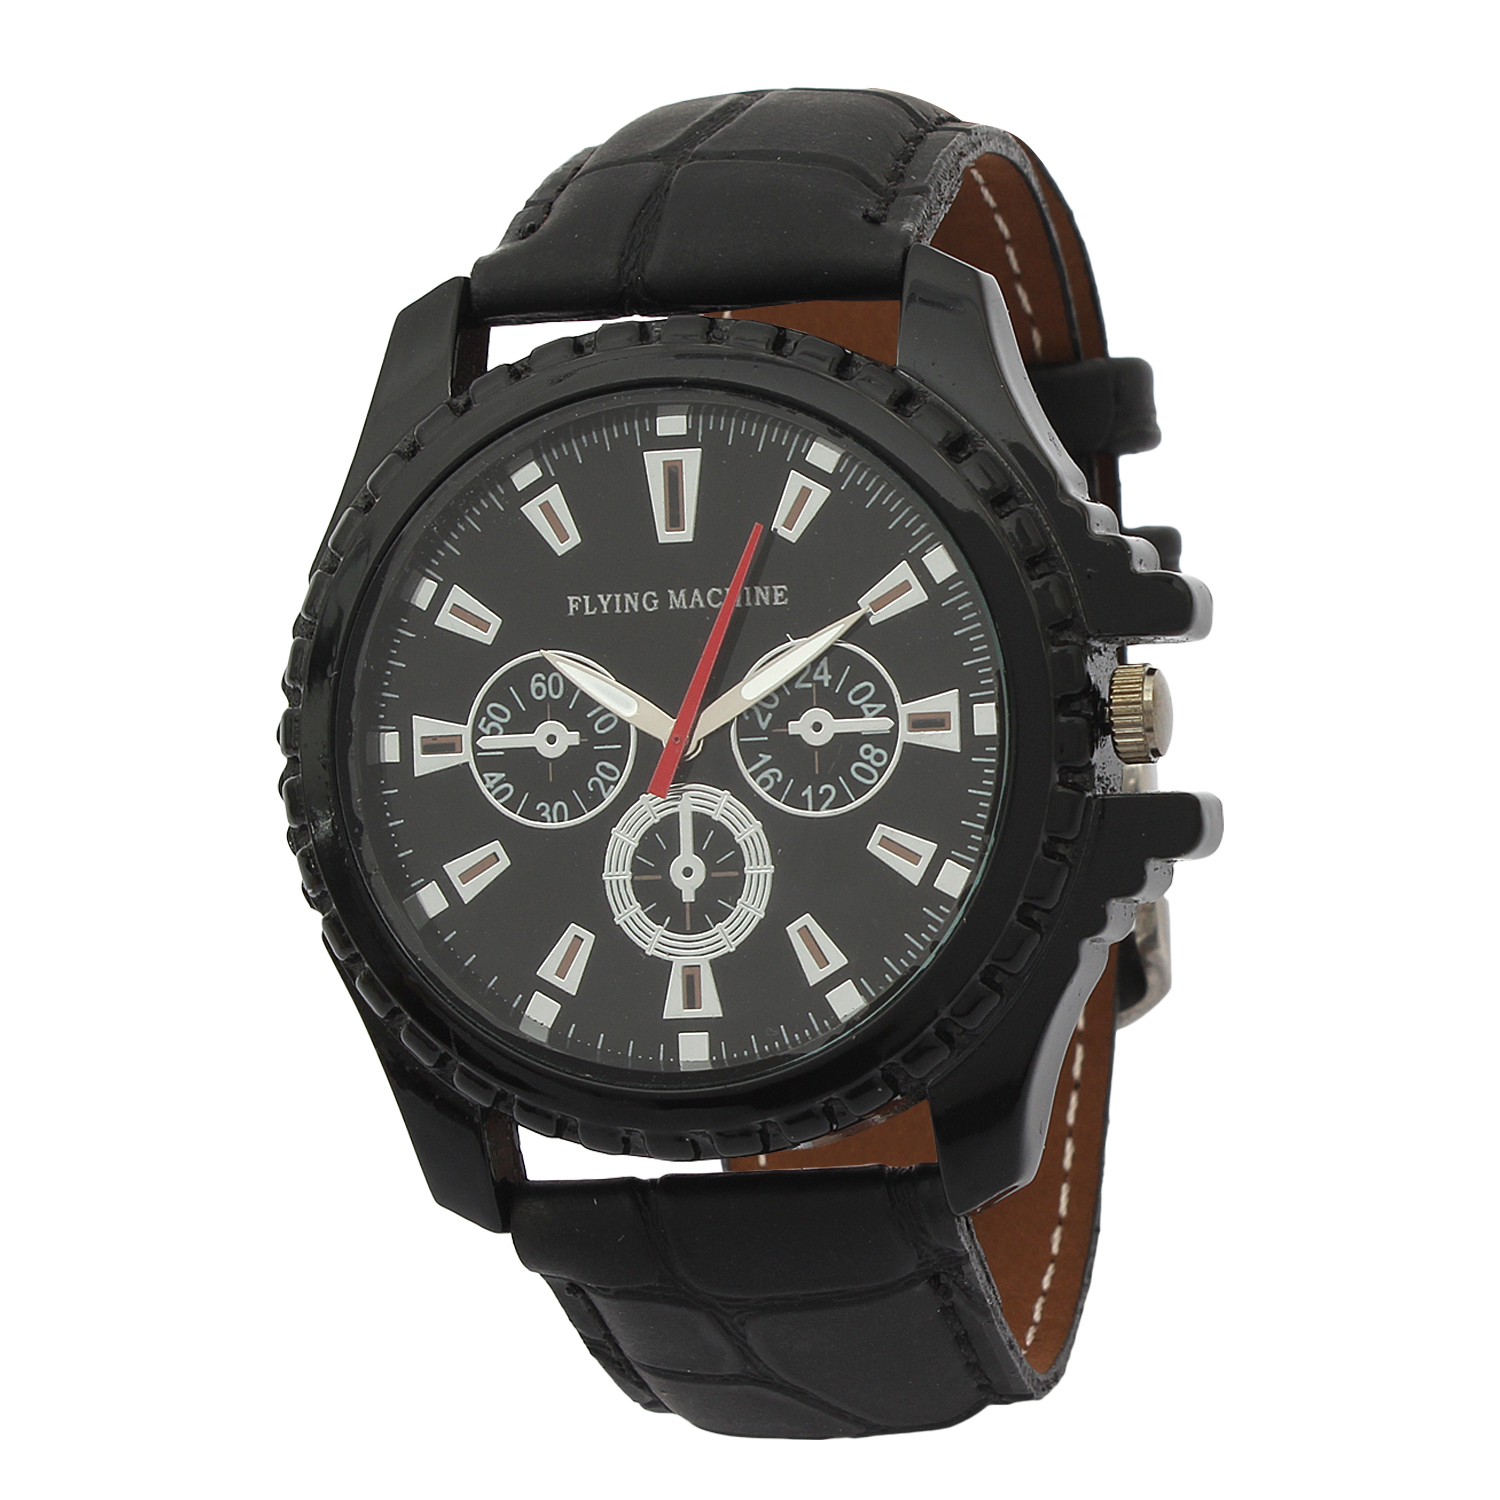 watch flying pilot gifts watches flightstore and aviation garmin pilots aviators zoom for bravo